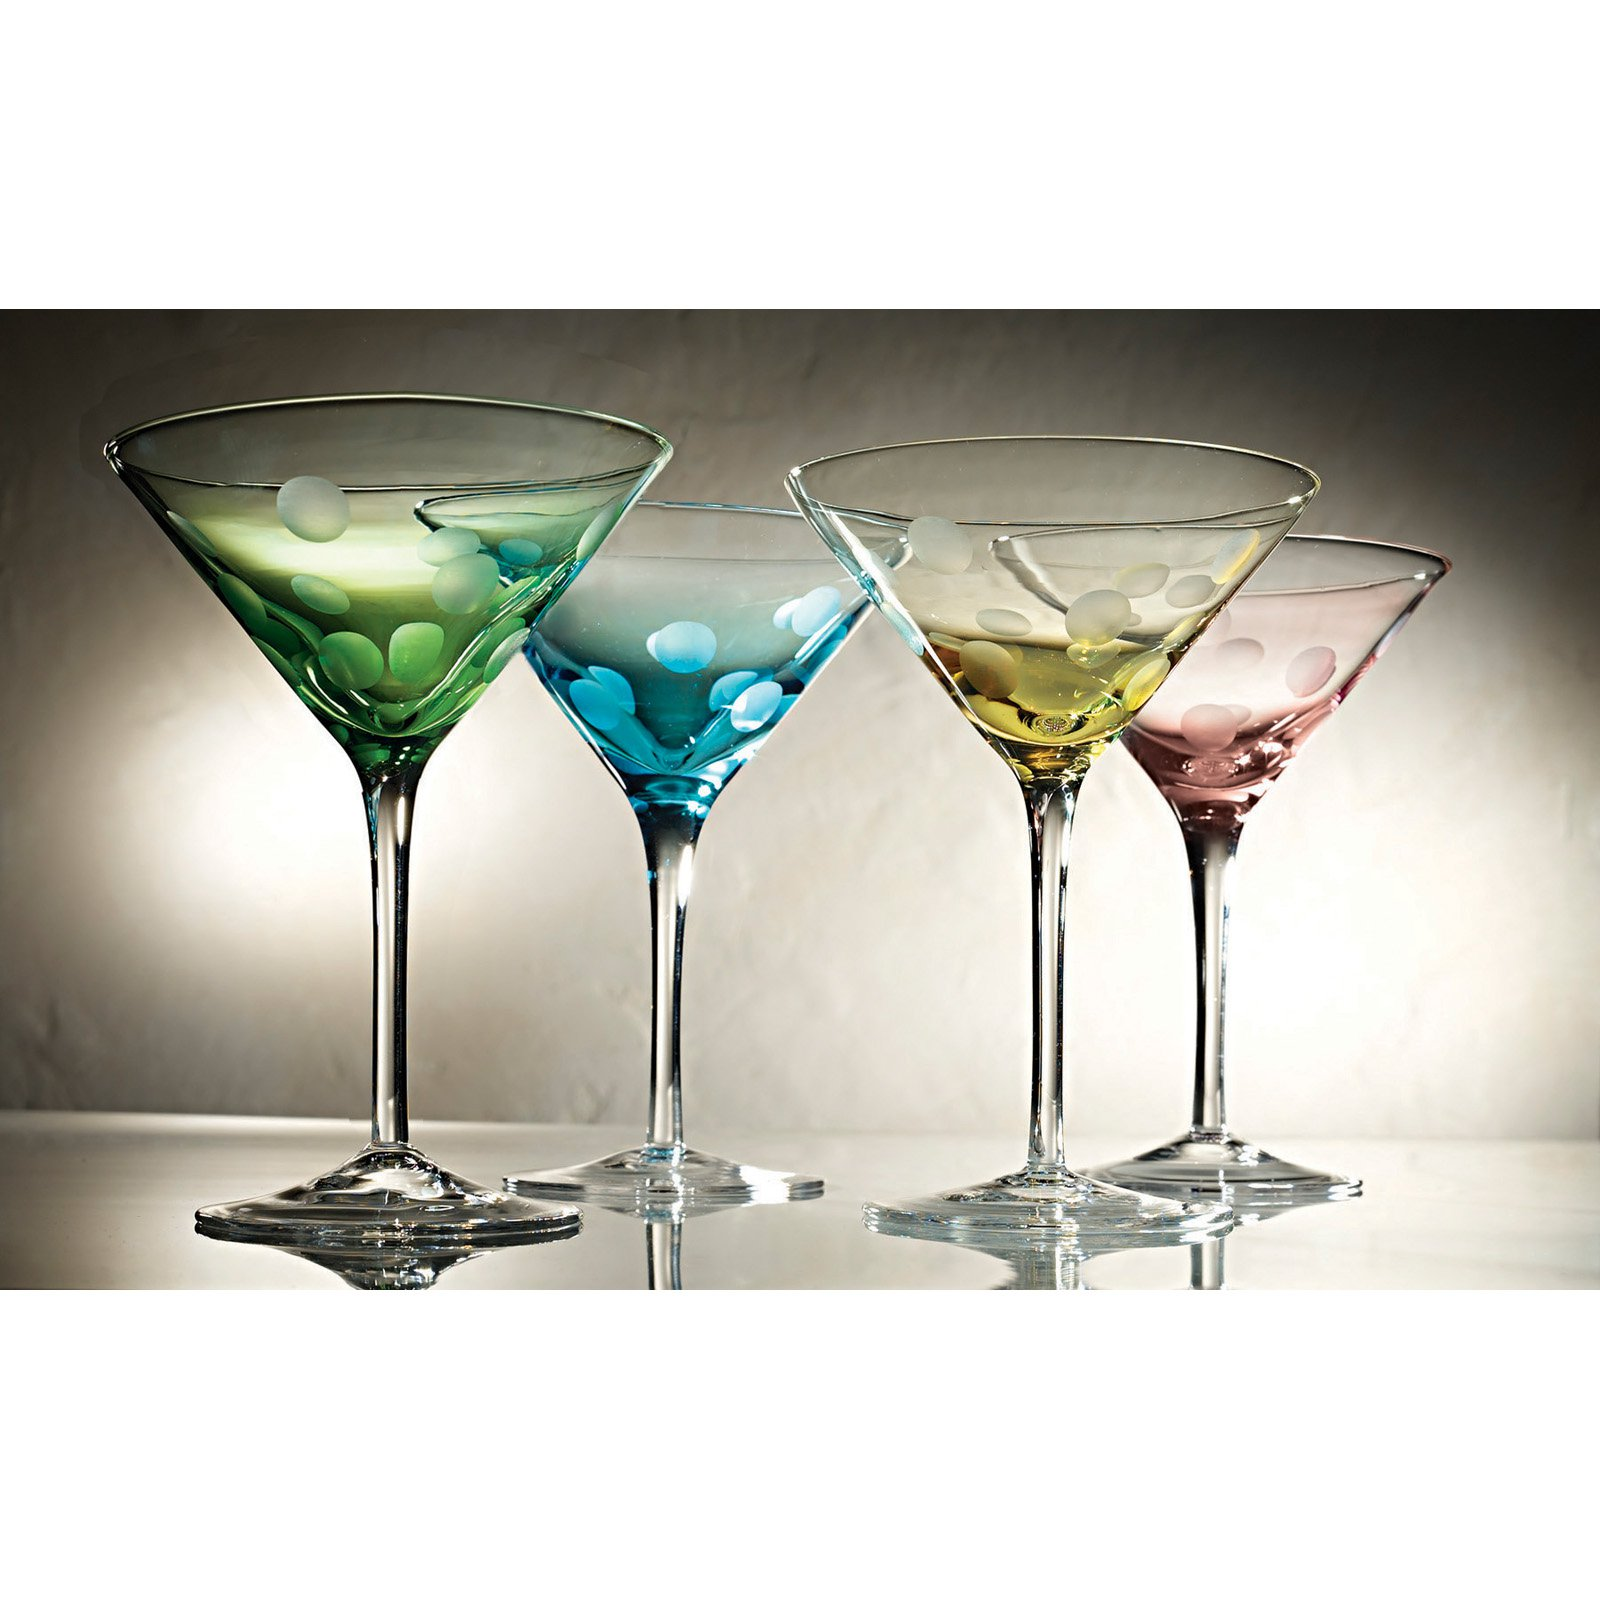 Artland Inc. Polka Dot 8 oz. Martini - Set of 4